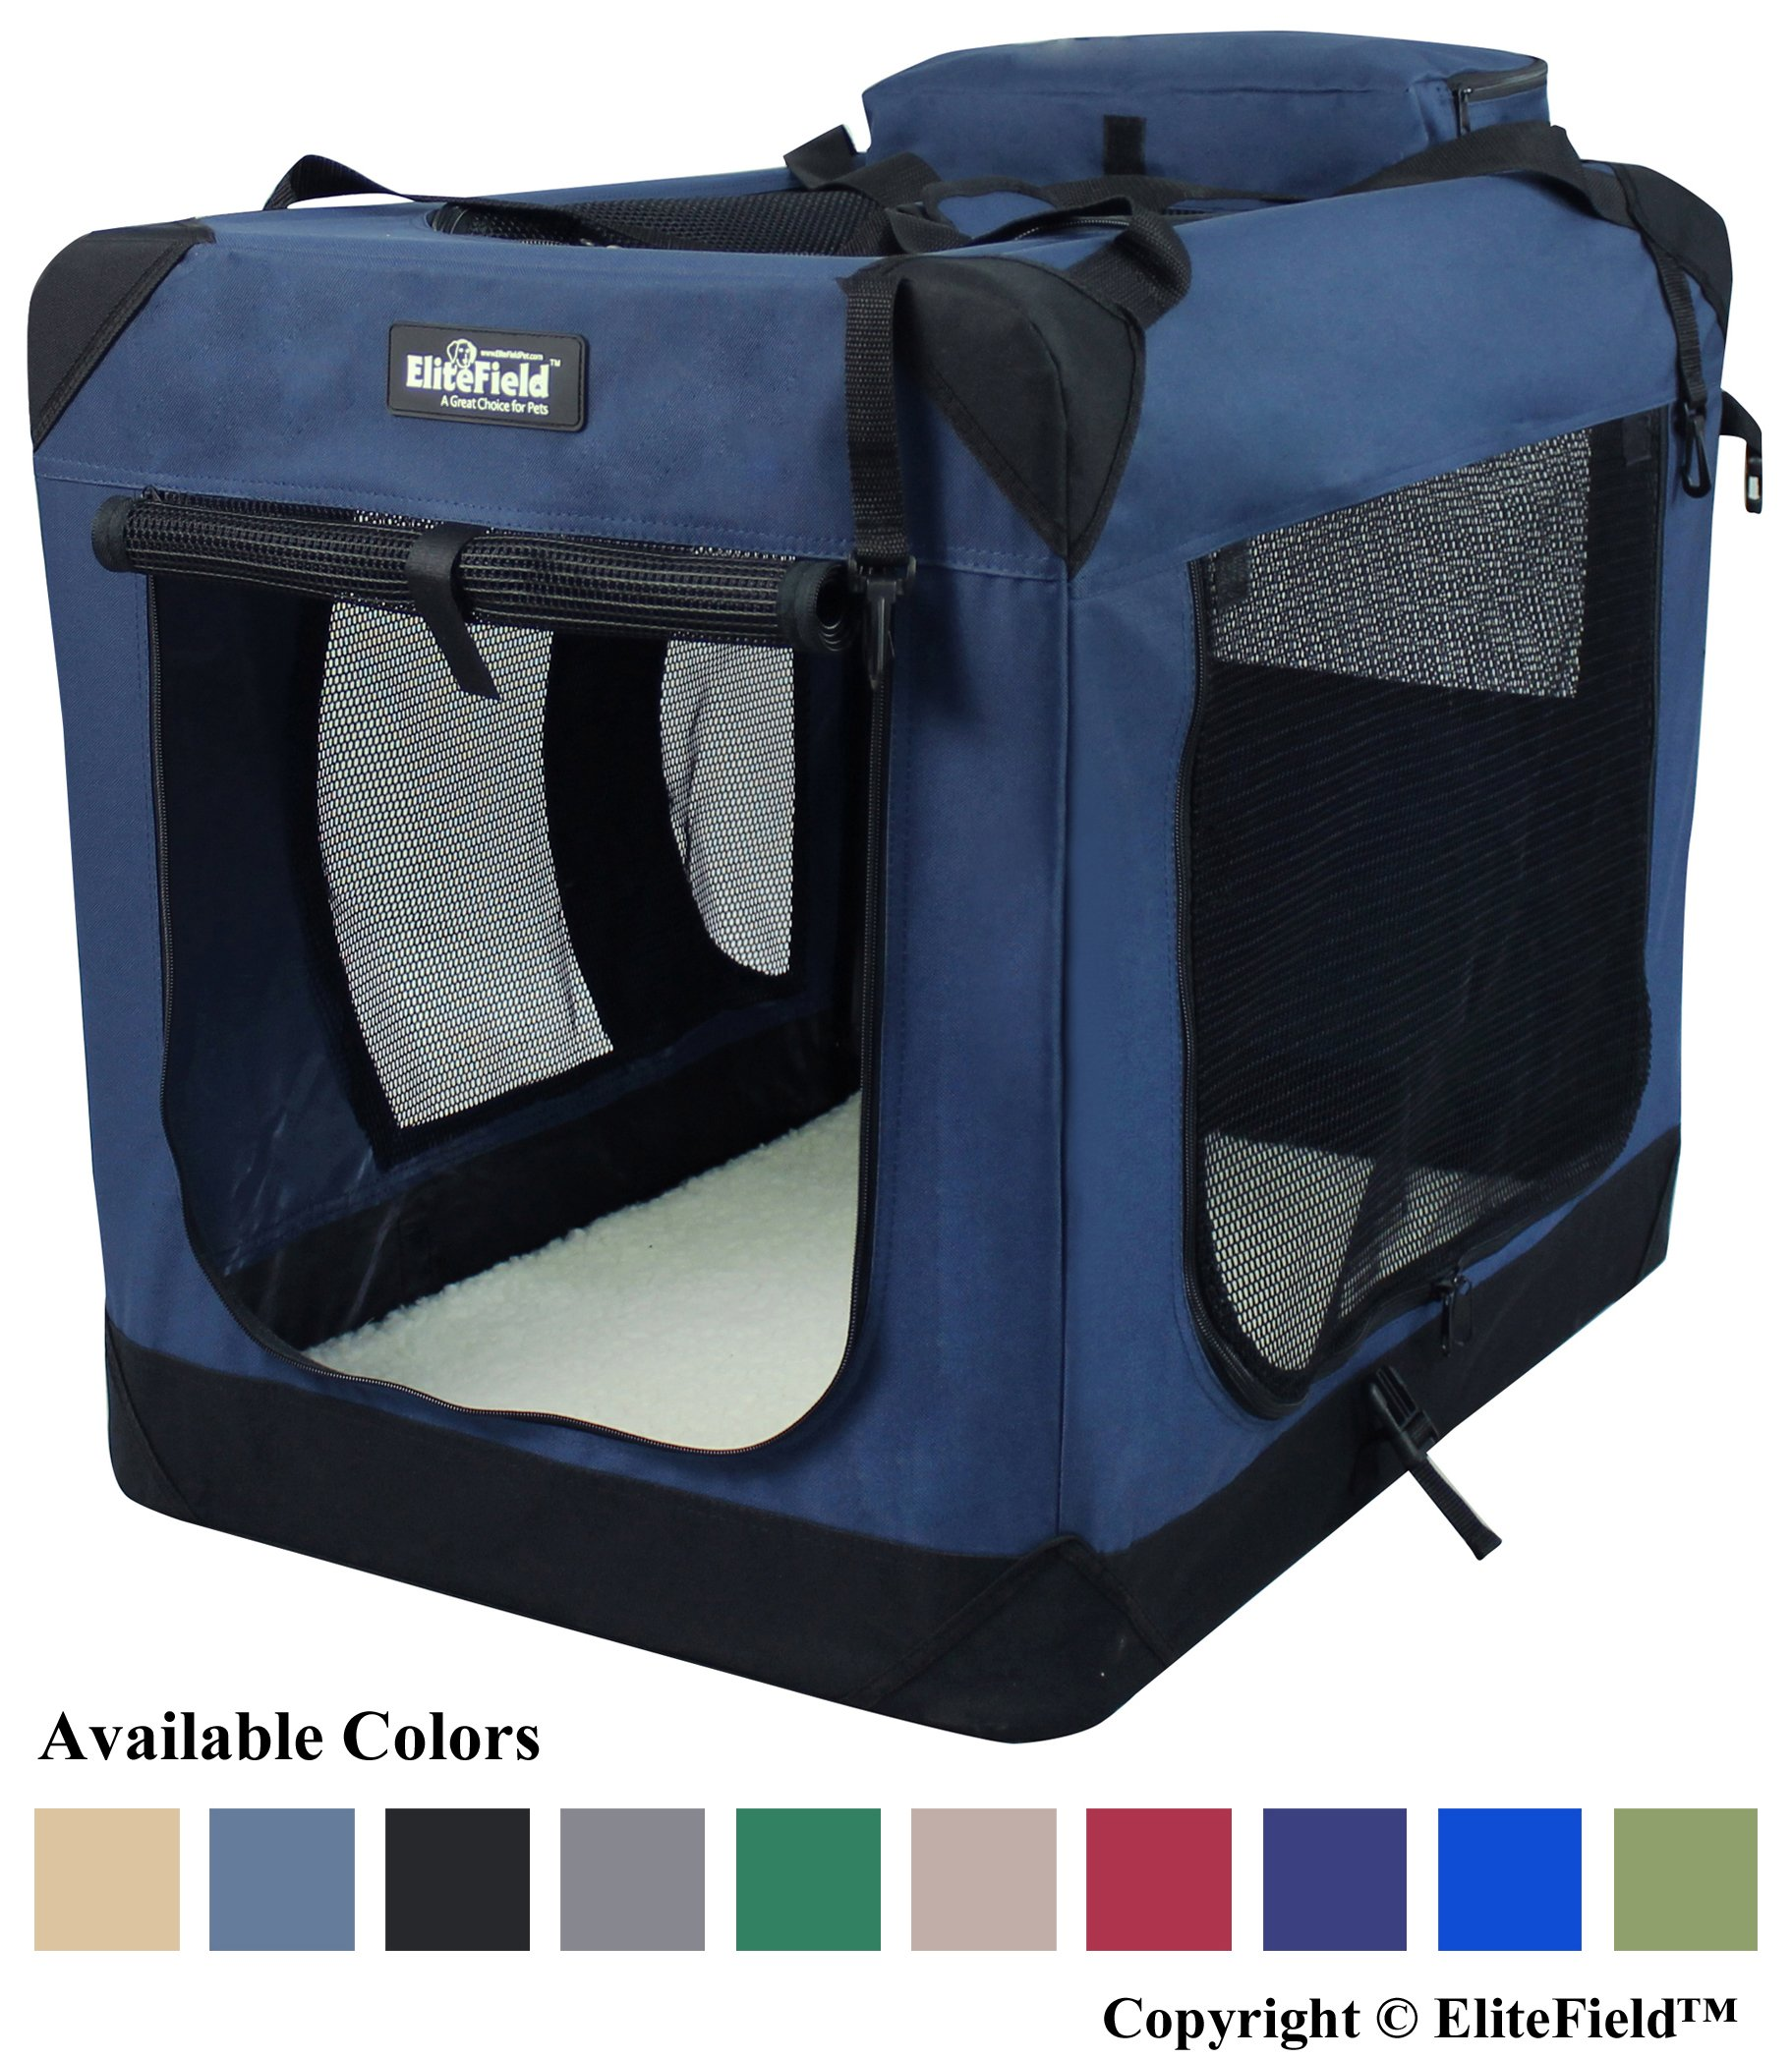 EliteField 3-Door Folding Soft Dog Crate, Indoor & Outdoor Pet Home, Multiple Sizes and Colors Available (20'' L x 14'' W x 14'' H, Navy Blue)